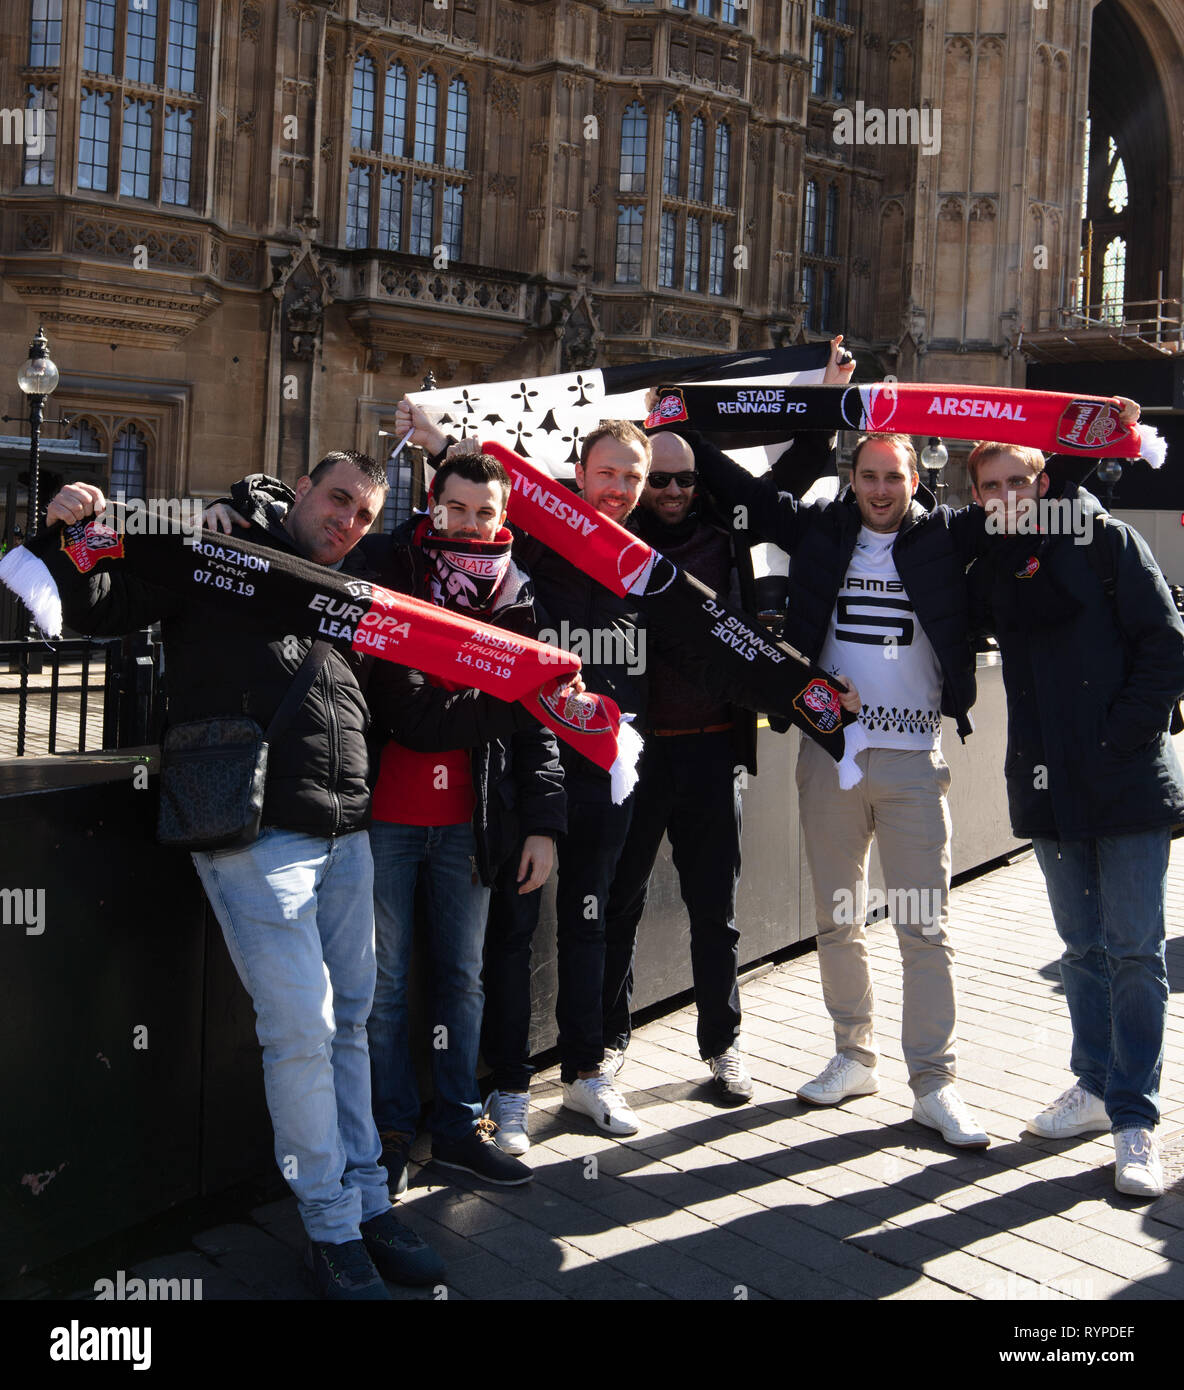 London, UK. 14th Mar, 2019. Supporters of the French soccer club Rennes, which will play Arsenal in the Europa League, in front of the House of Parliament today. Credit: Joe/Alamy Live News Stock Photo